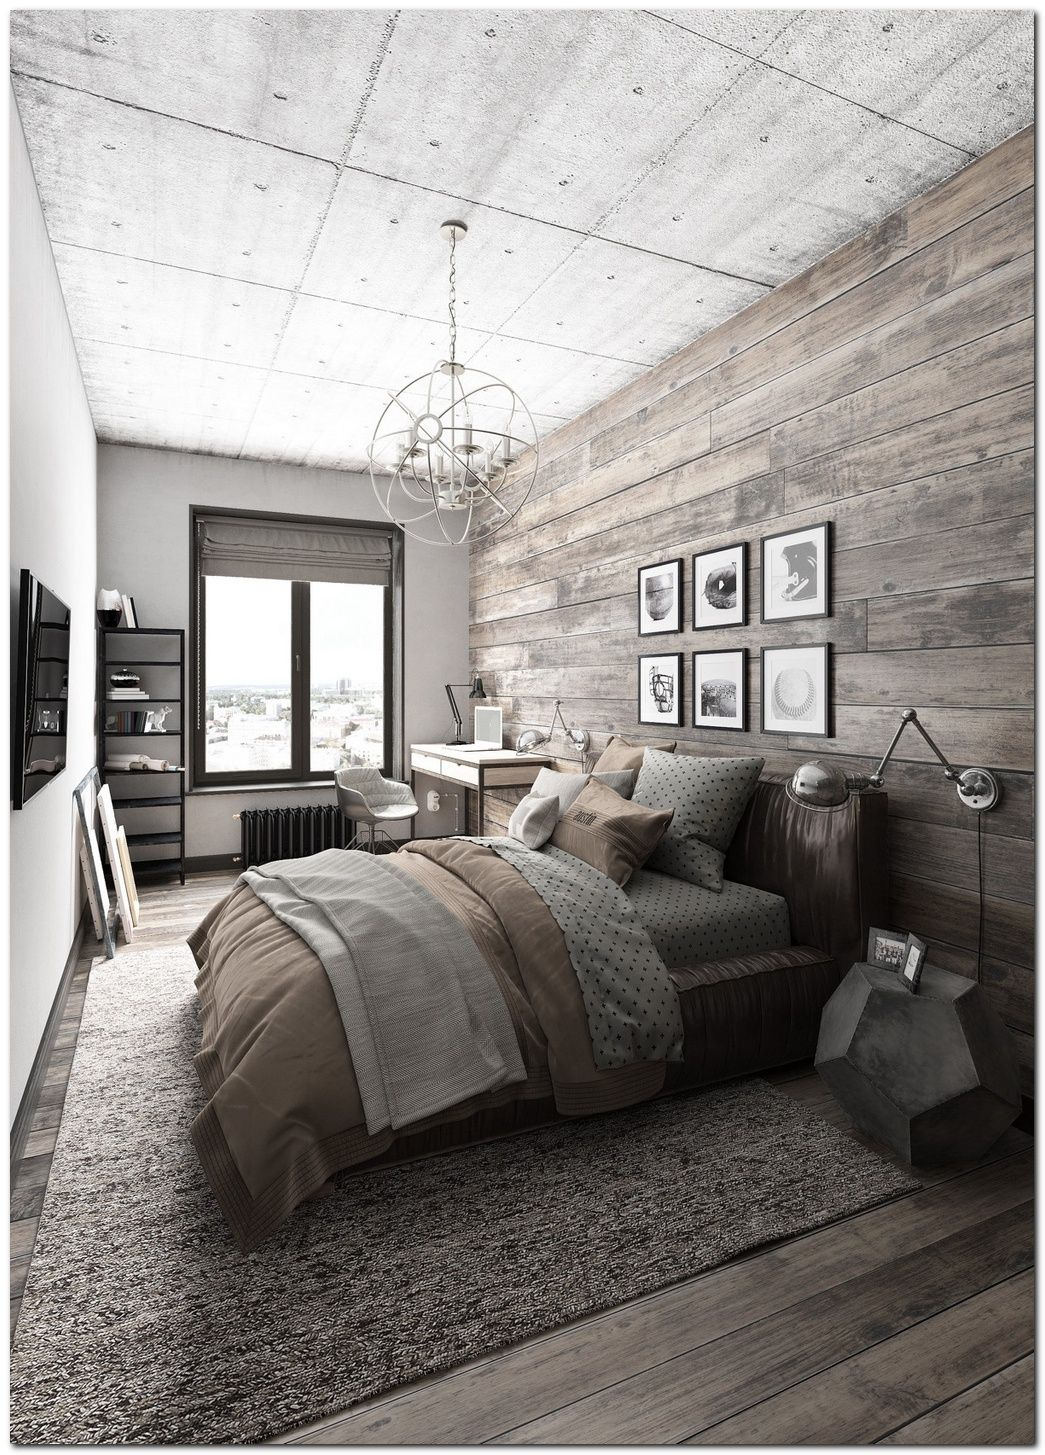 70+ Ideas for Industrial Bedroom Interior & 70+ Ideas for Industrial Bedroom Interior | Pinterest | Industrial ...